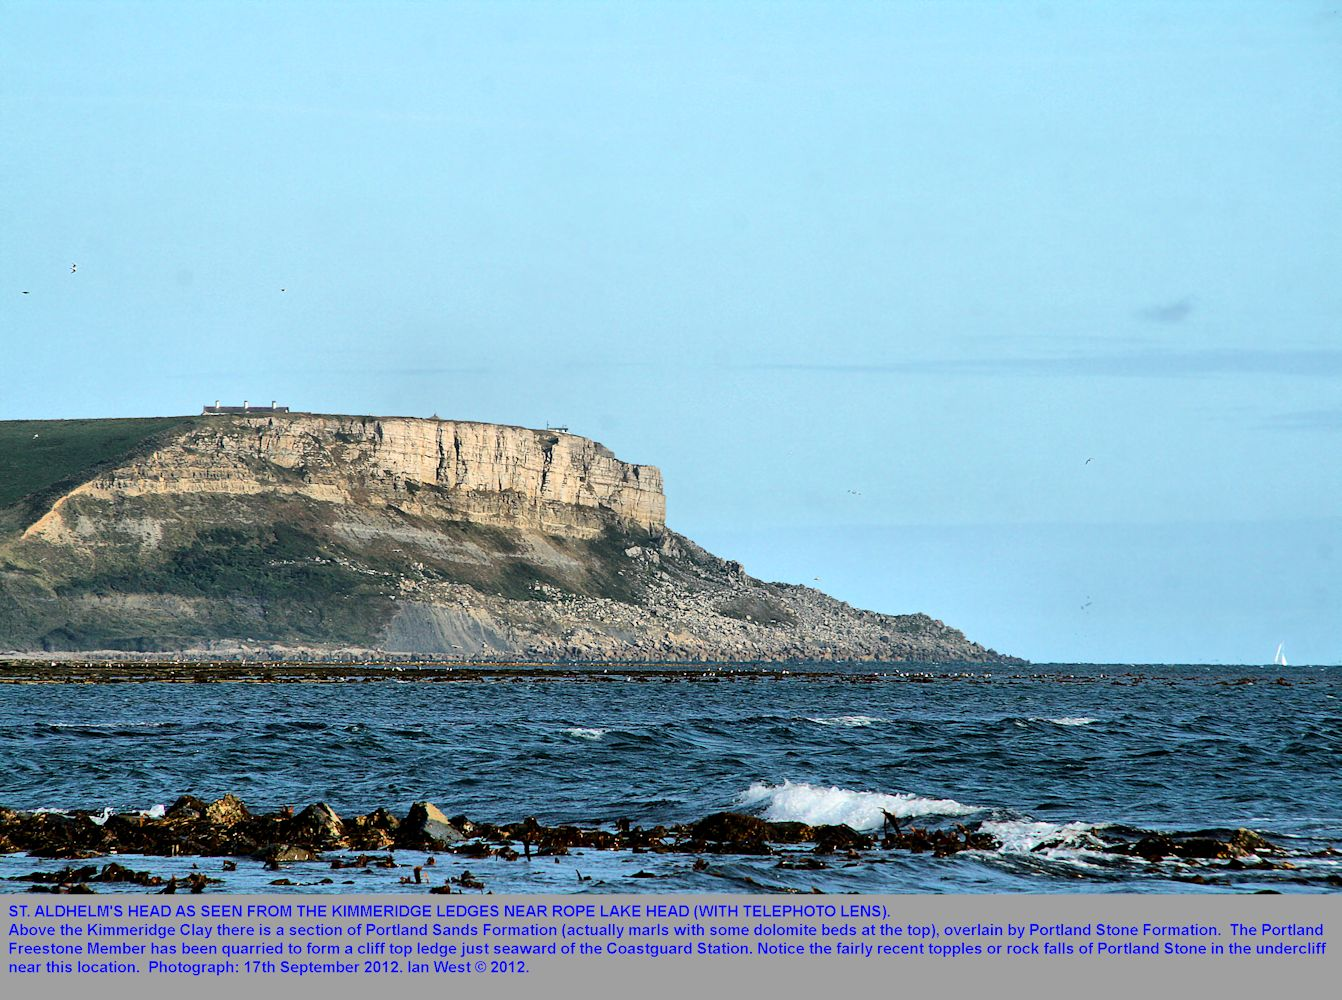 St. Aldhelm's Head, Dorset, Jurassic Coast seen from near Rope Lake Head, with telephoto lens, 17th September 2012